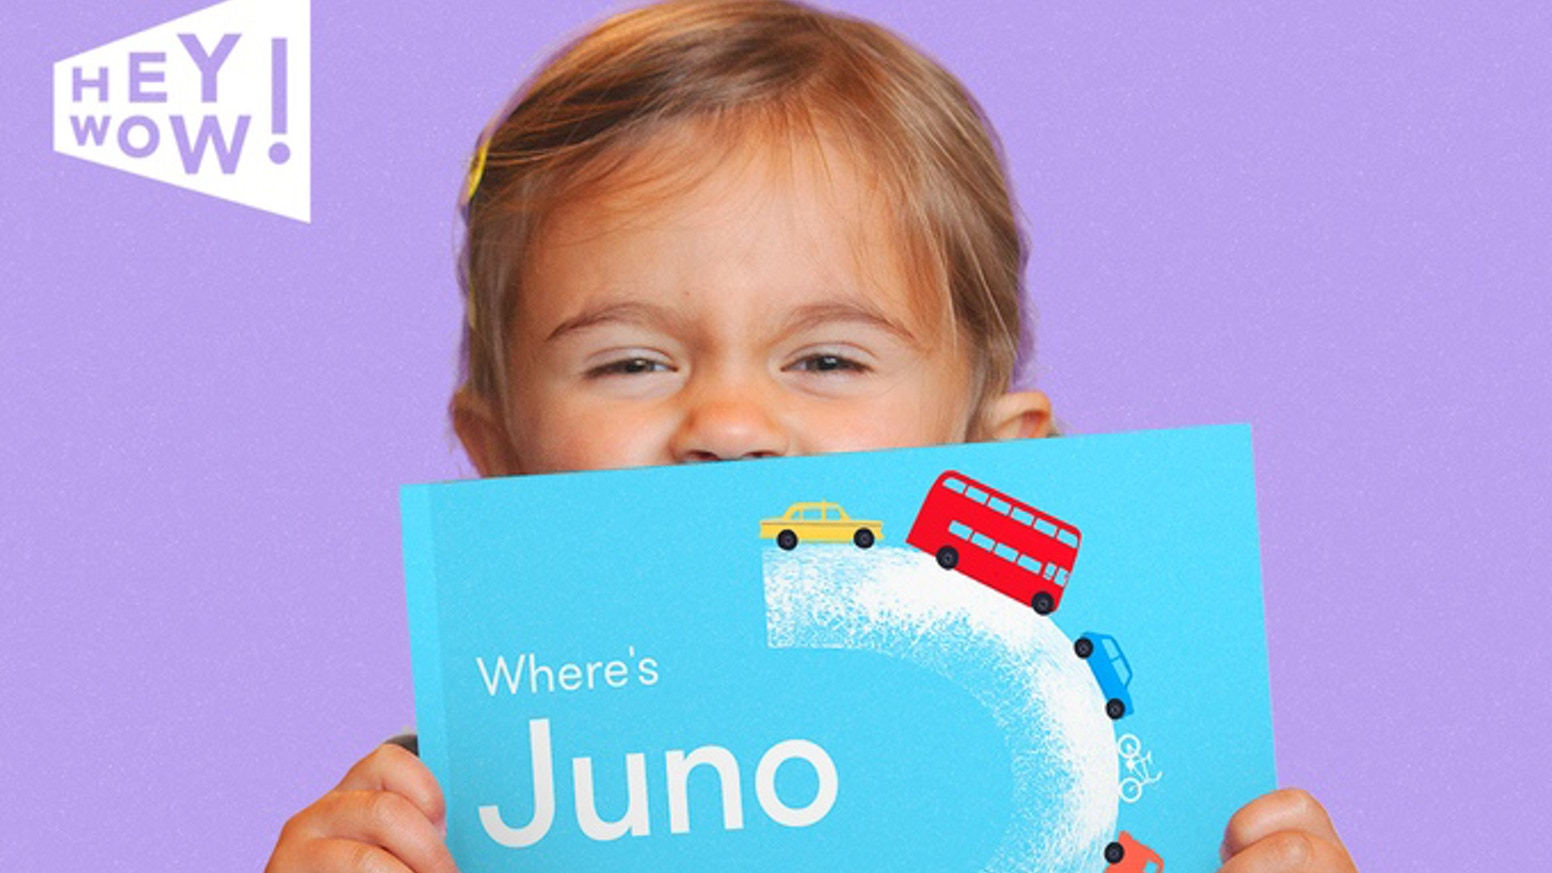 Bold, bright and beautifully illustrated, our seek & find picture book features your child's face and name on every page. Wow!